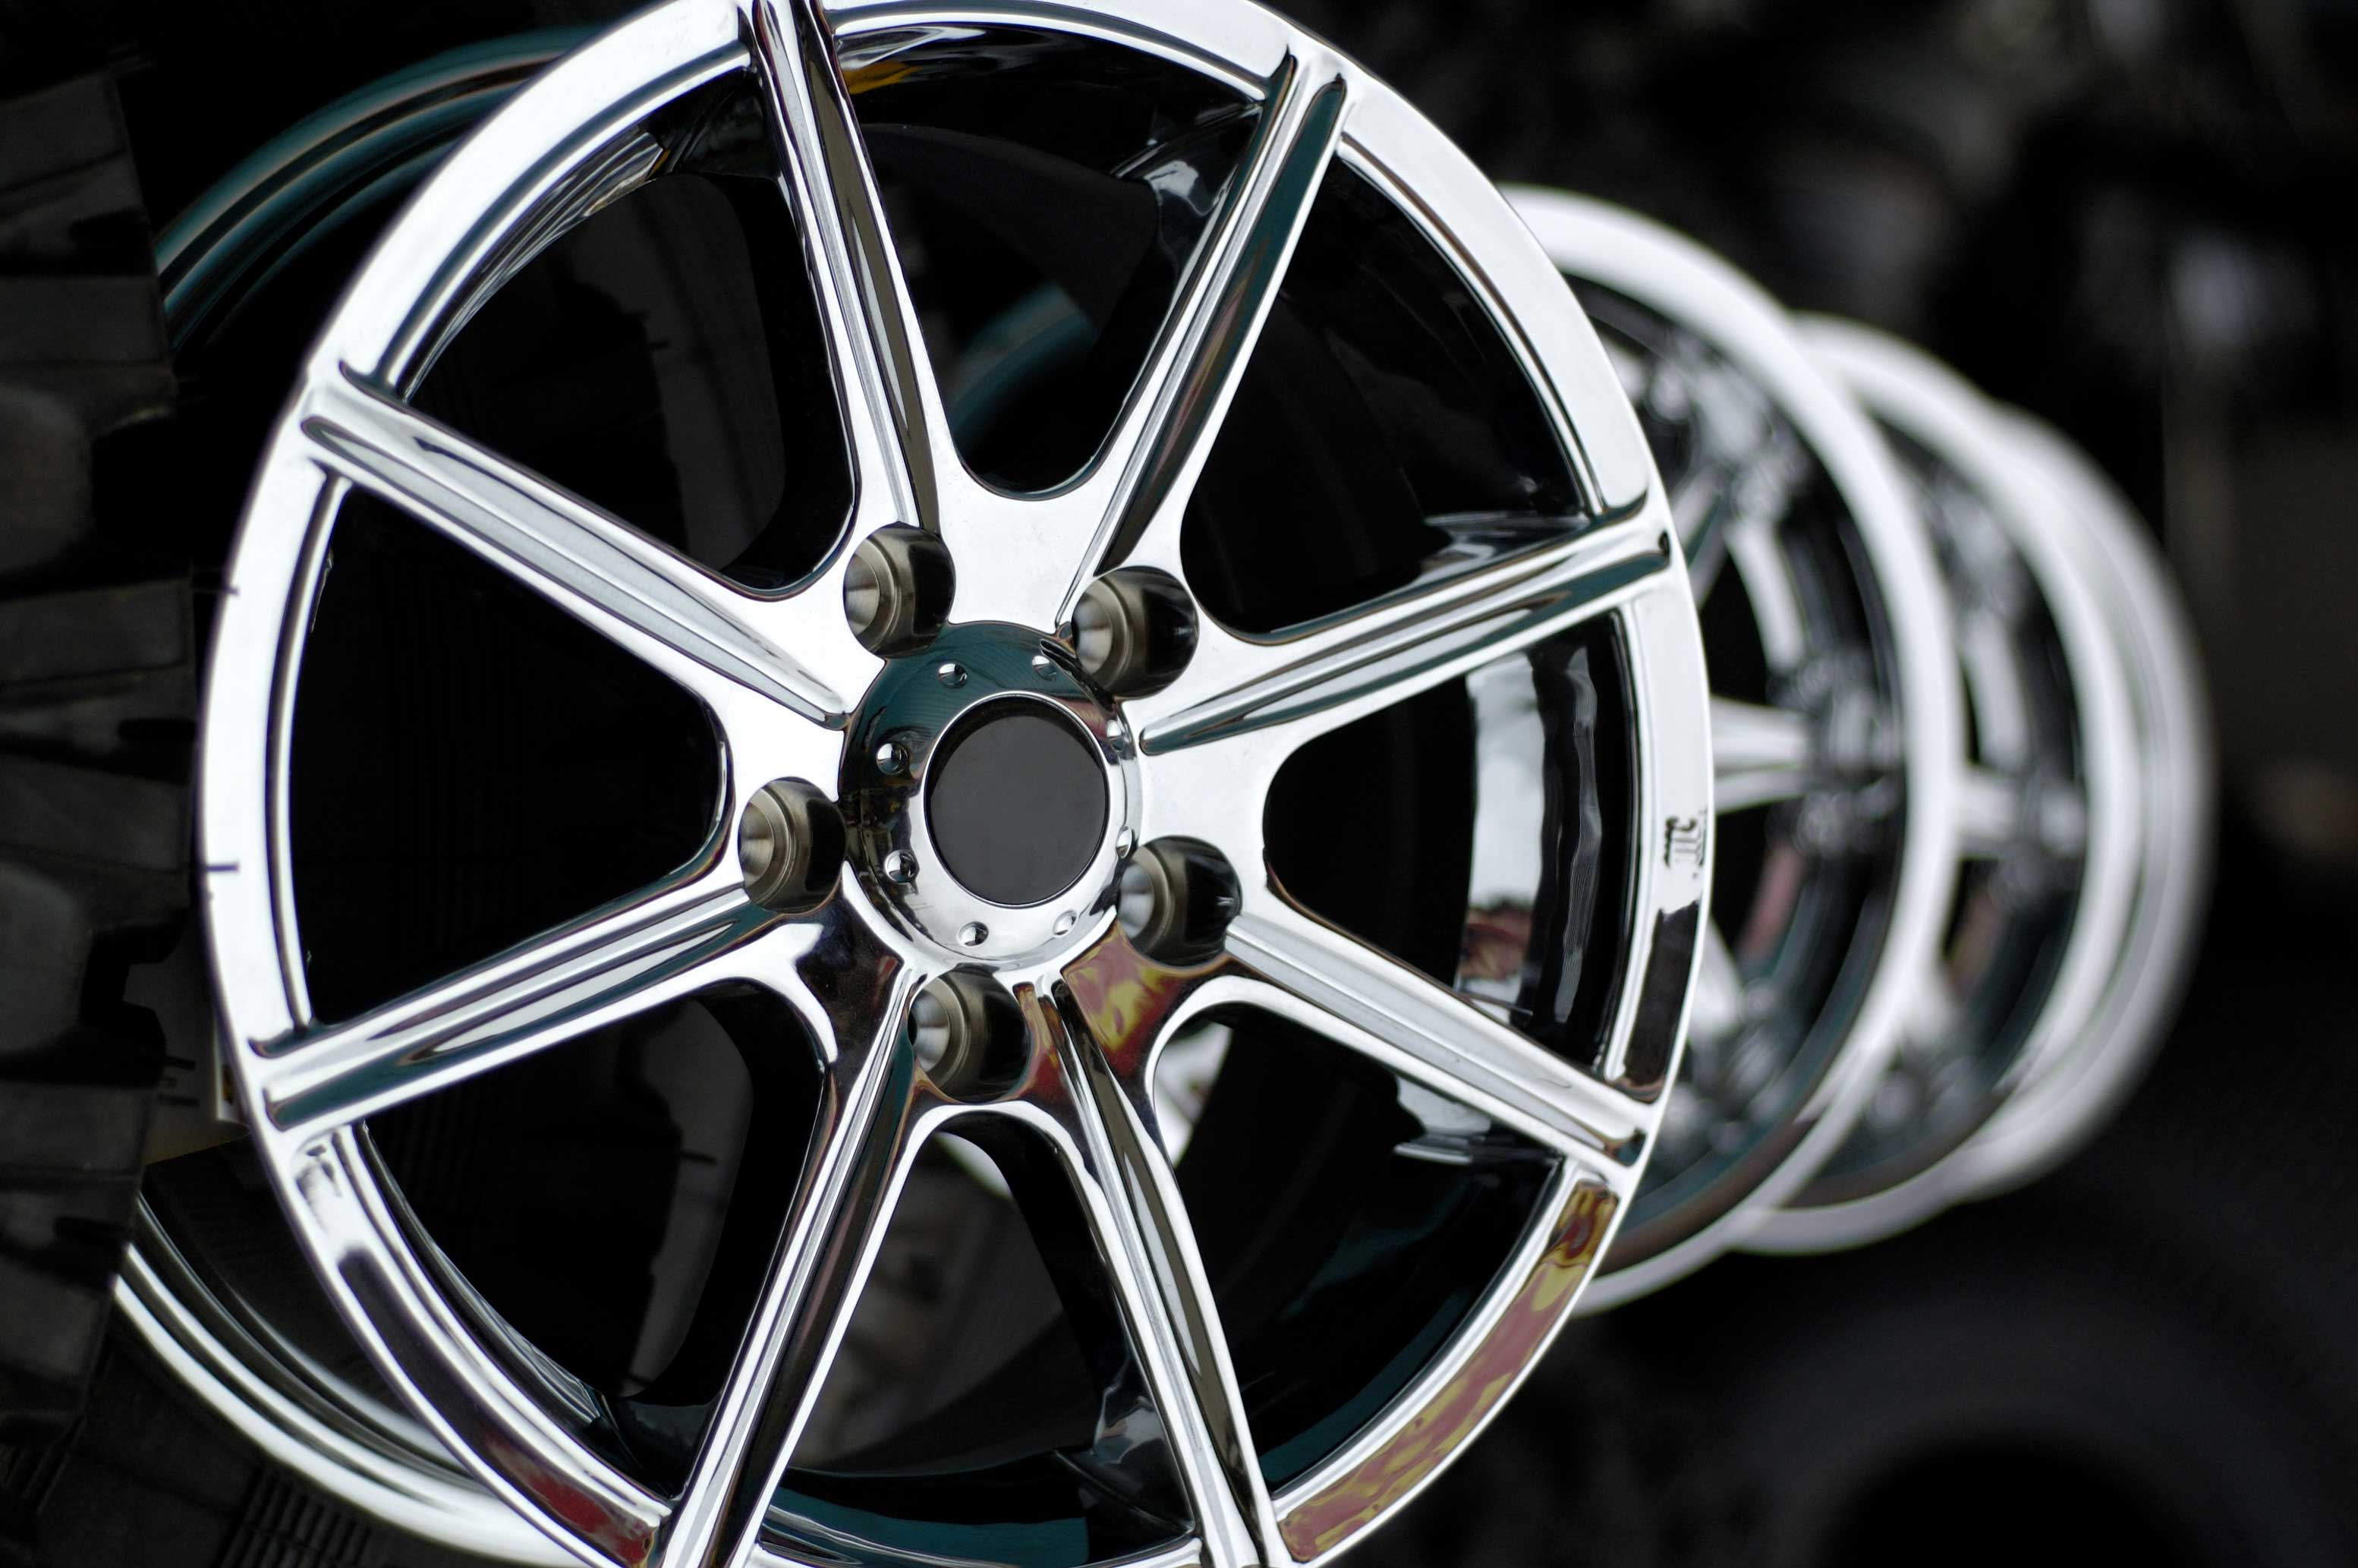 Four alloy wheels lined up